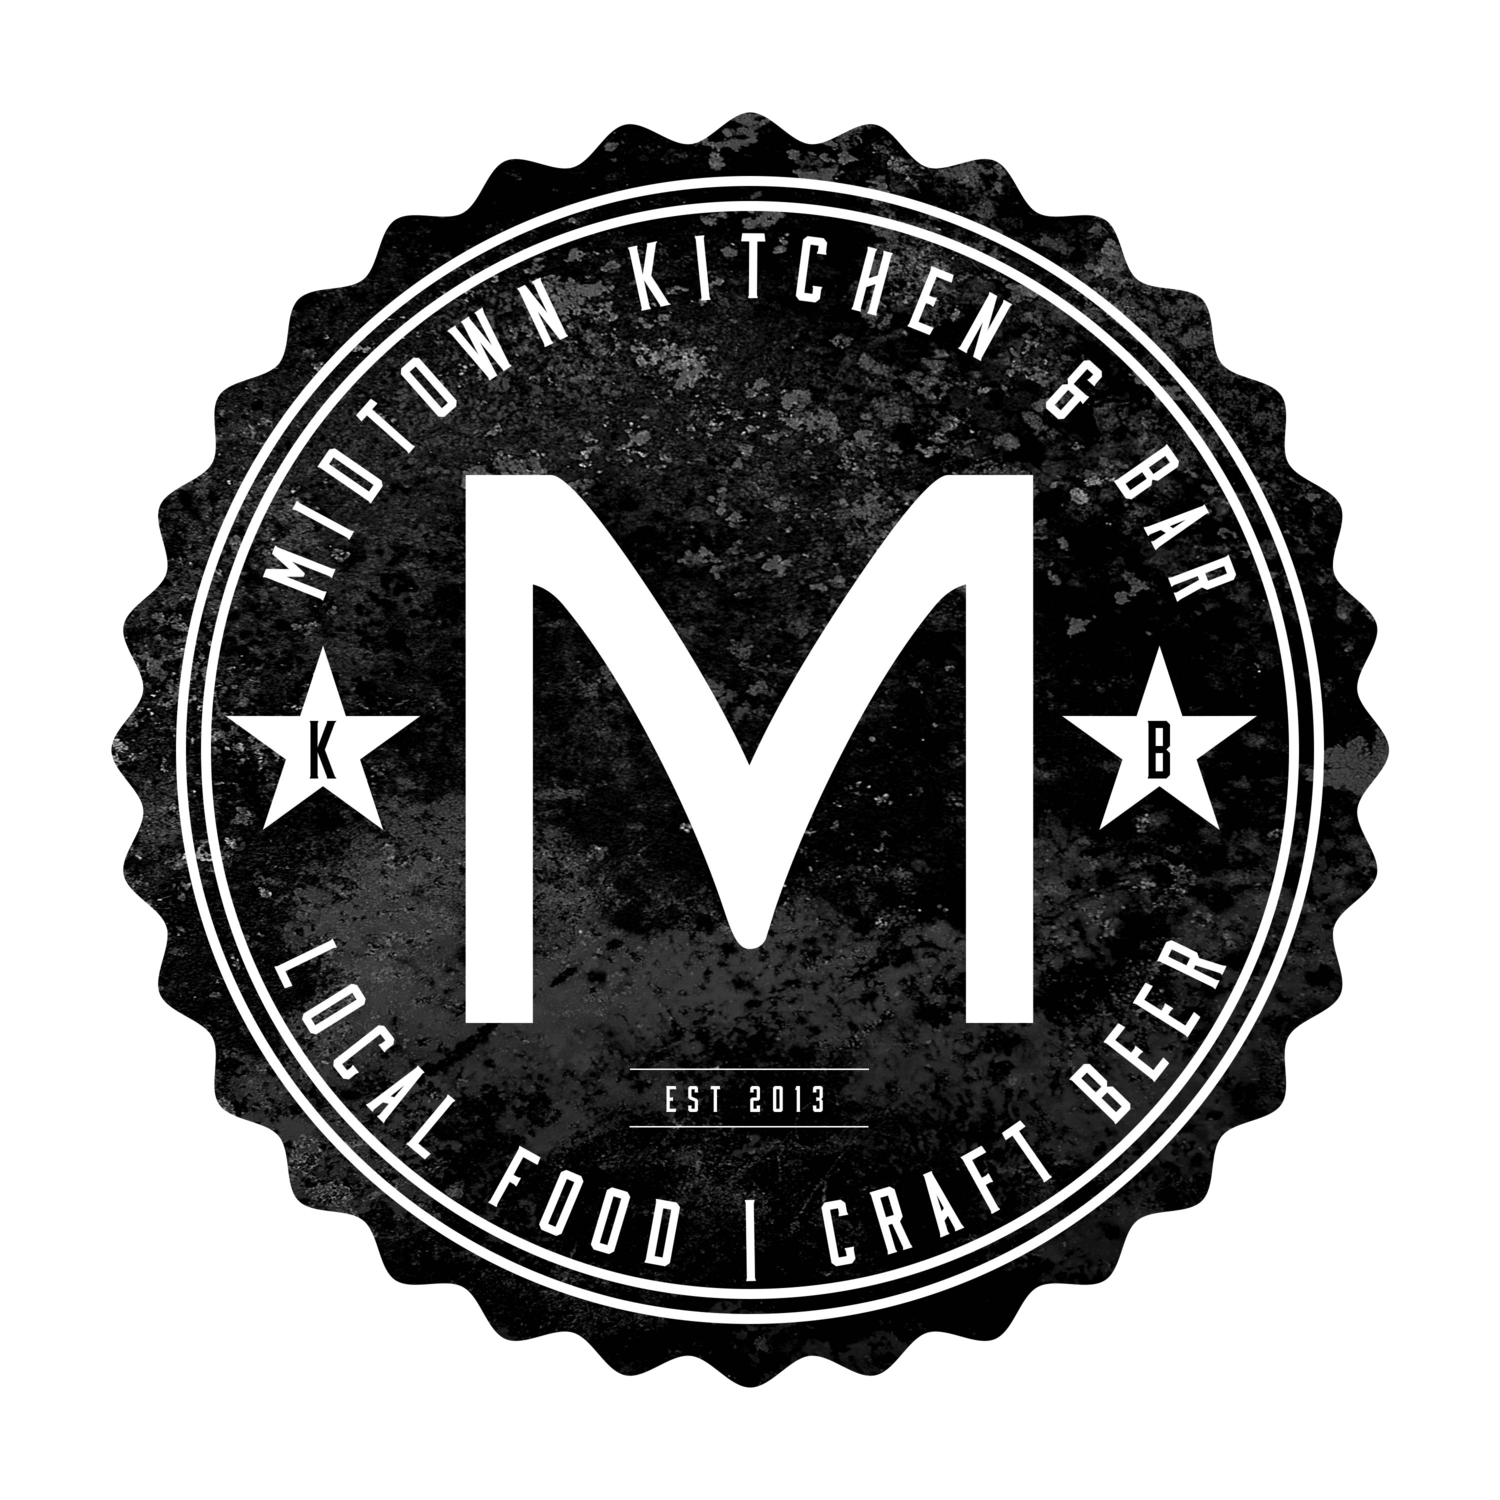 Midtown Kitchen